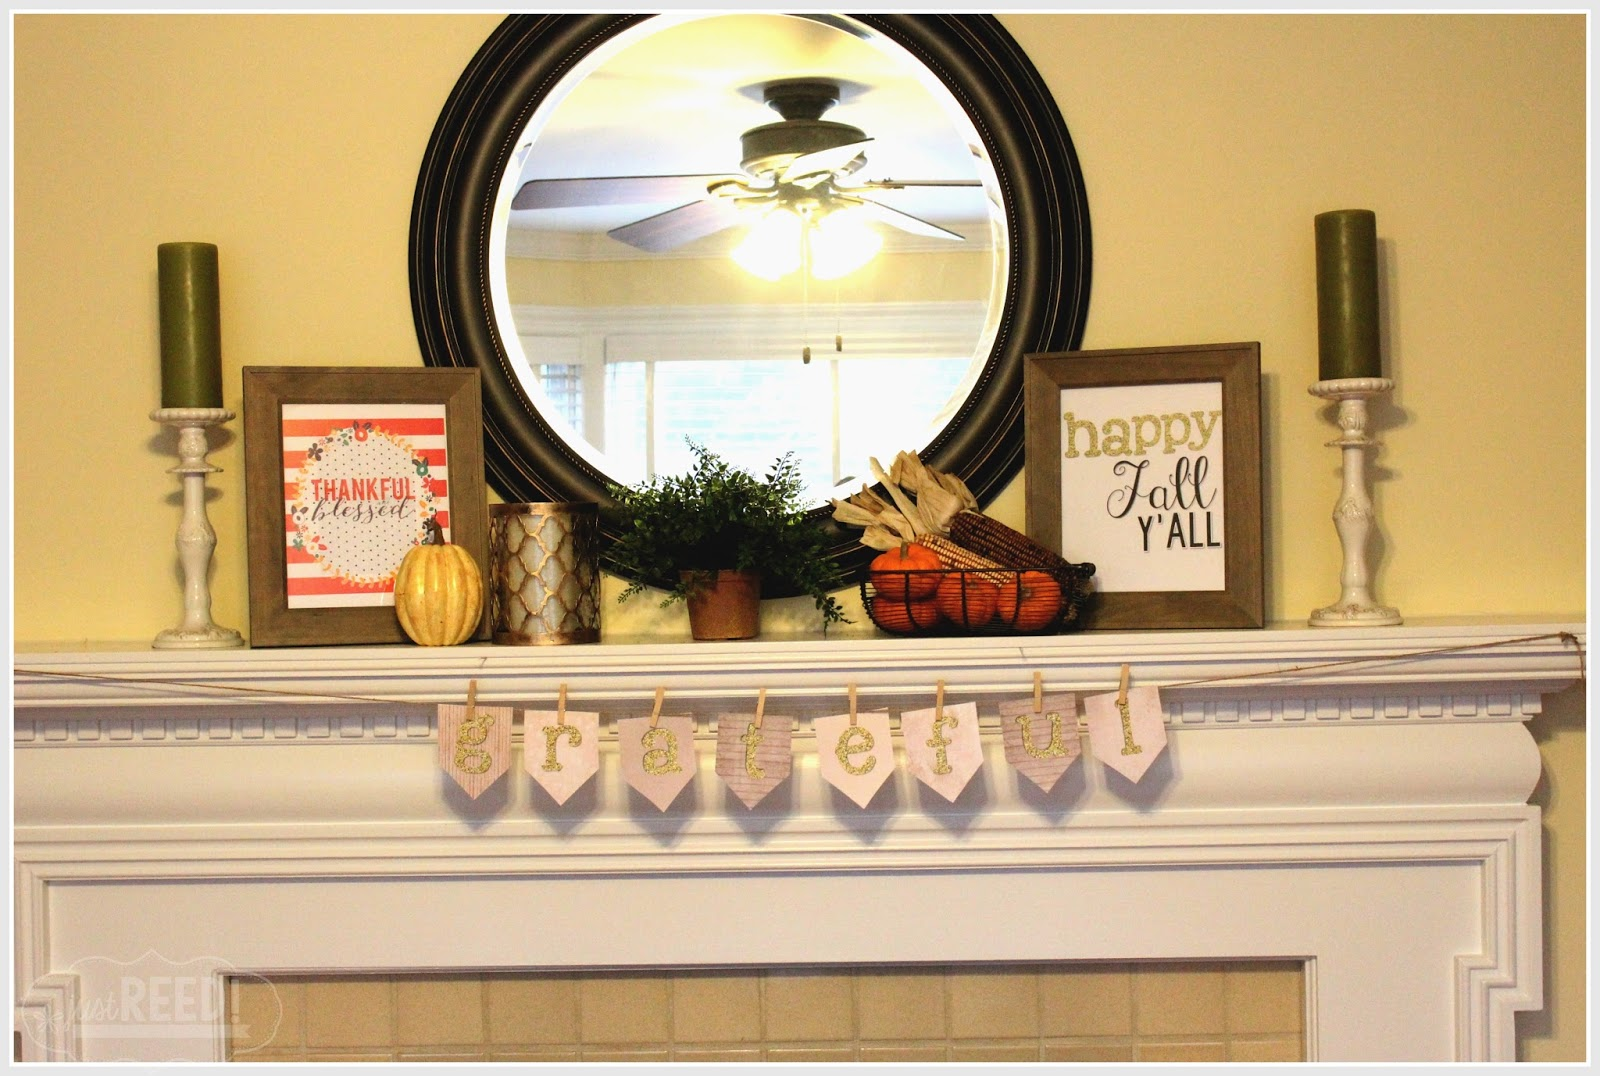 november home decor designing on a dime just reed On november home decorations